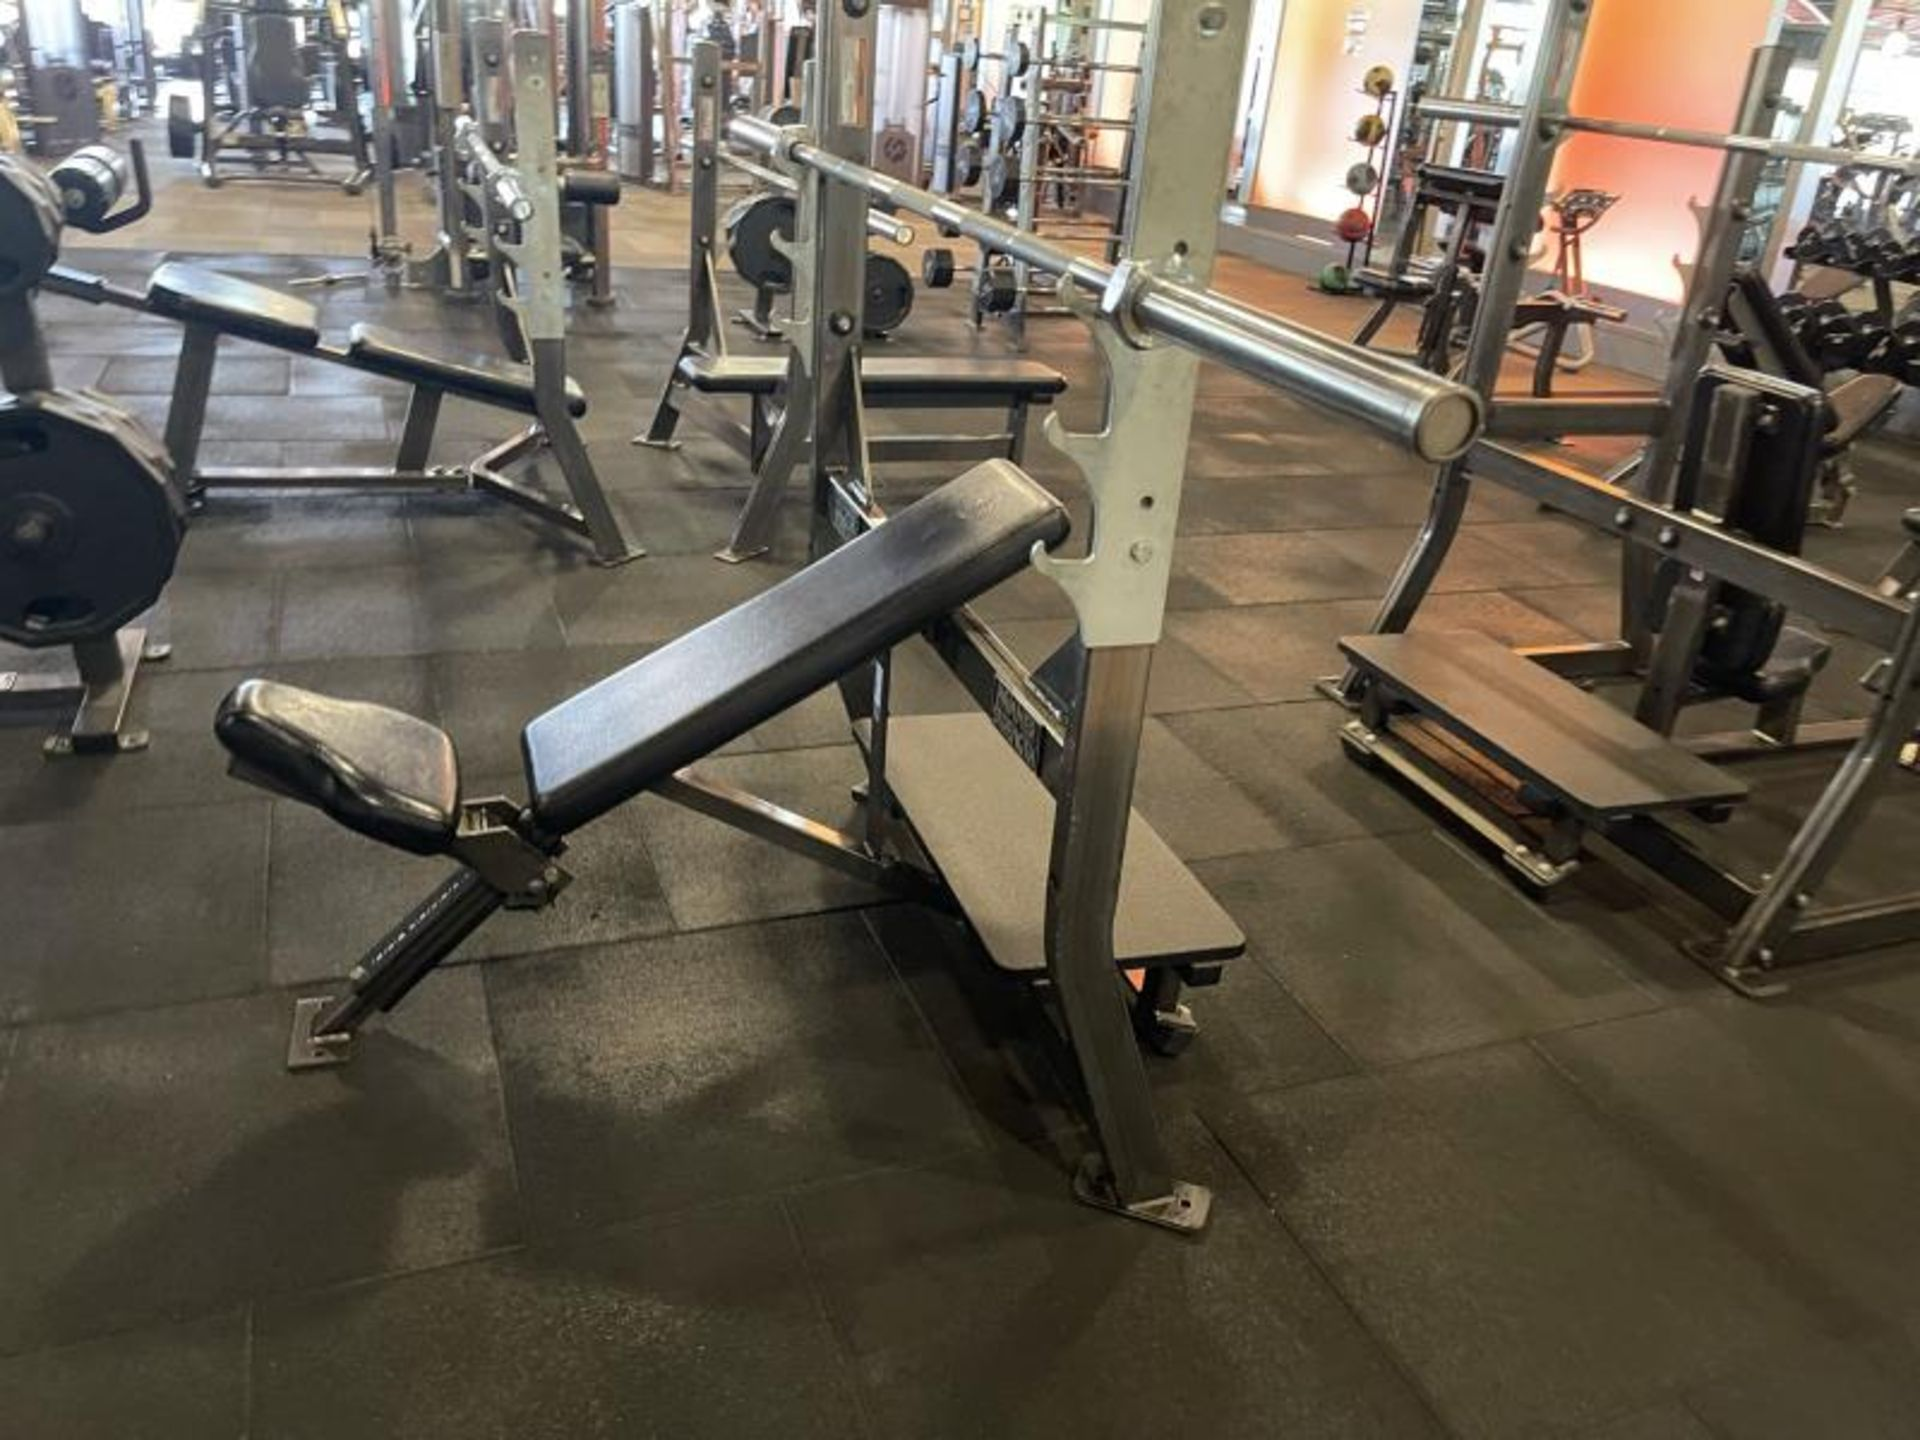 Hammer Strength with Bench, Rack, Bars - Image 2 of 5